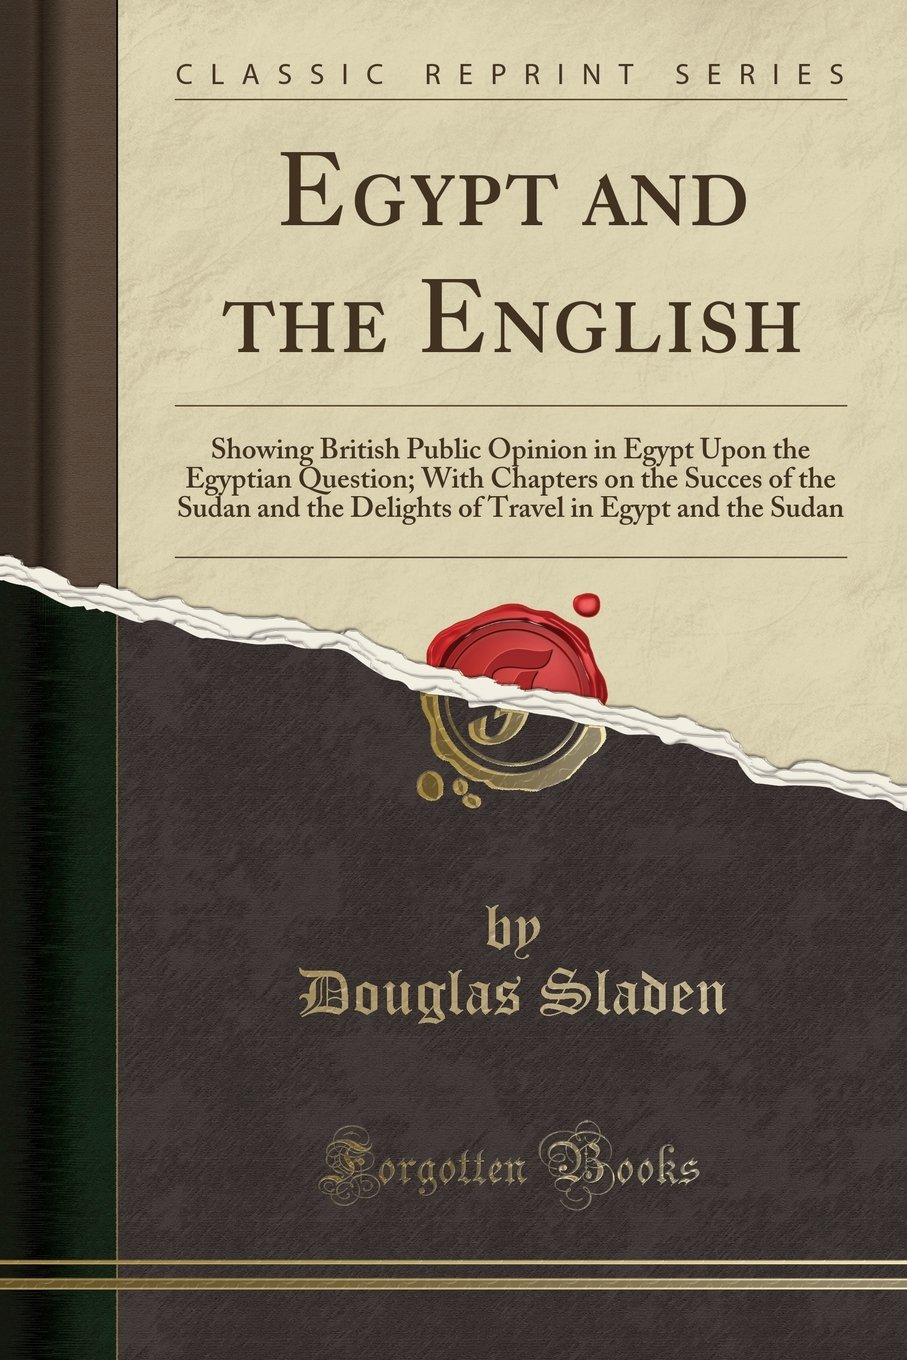 Egypt and the English: Showing British Public Opinion in Egypt Upon the Egyptian Question; With Chapters on the Succes of the Sudan and the Delights of Travel in Egypt and the Sudan (Classic Reprint)